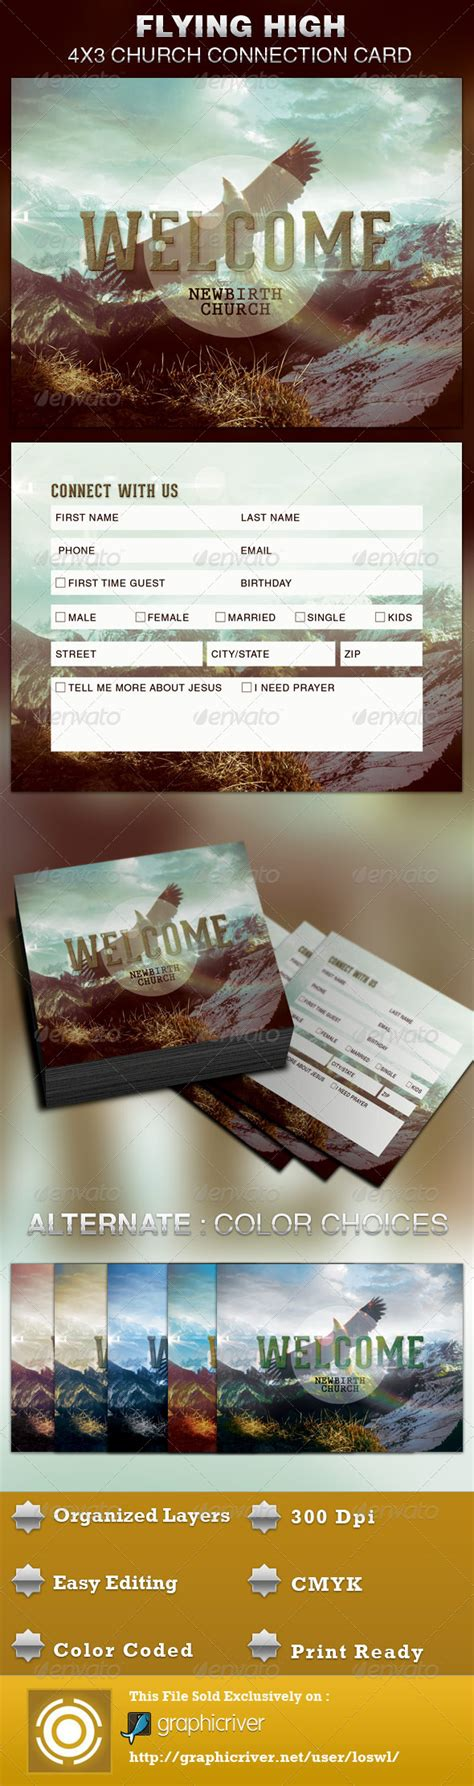 church visitor card template downloads flying high church connection card template graphicriver